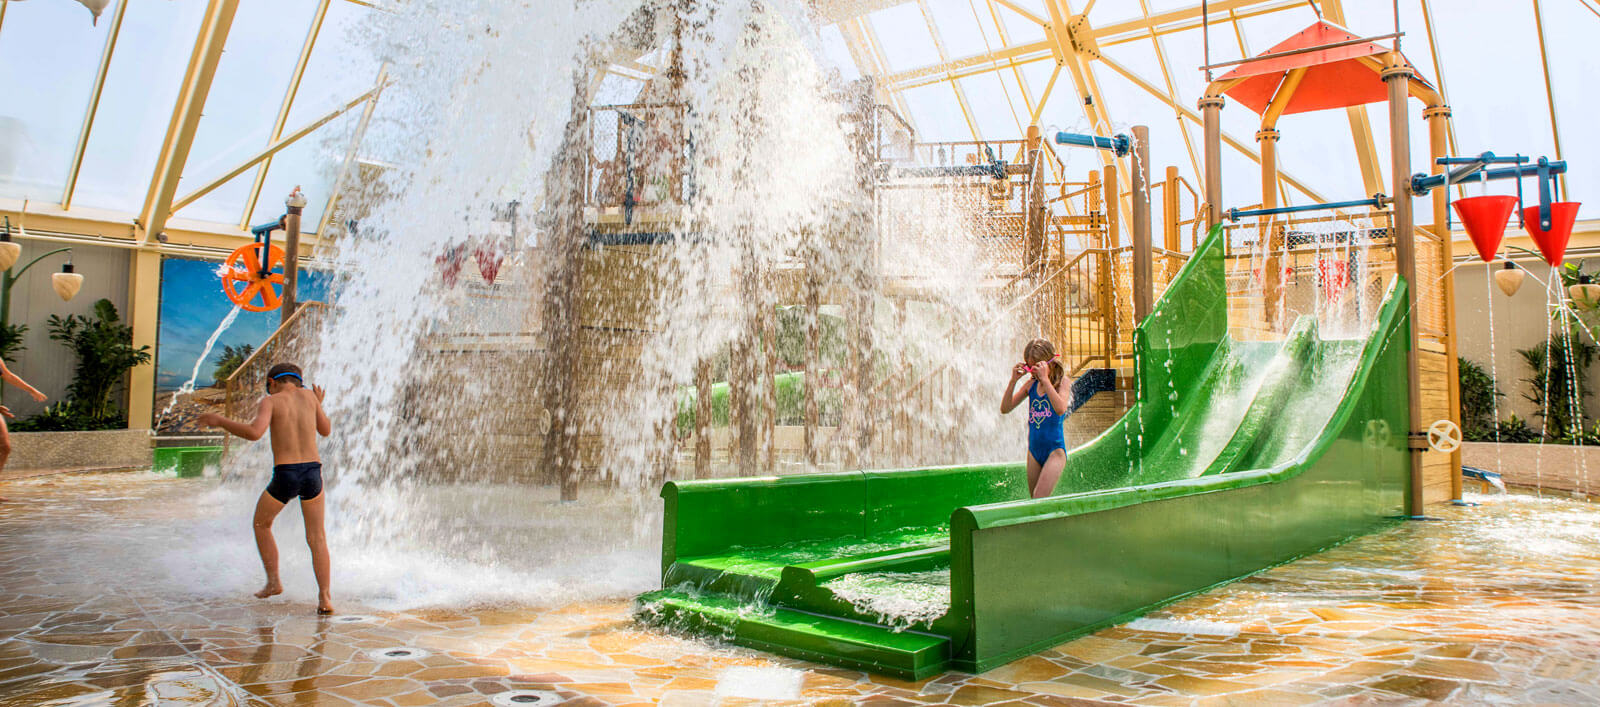 Nieuw Water Playhouse Port Zélande